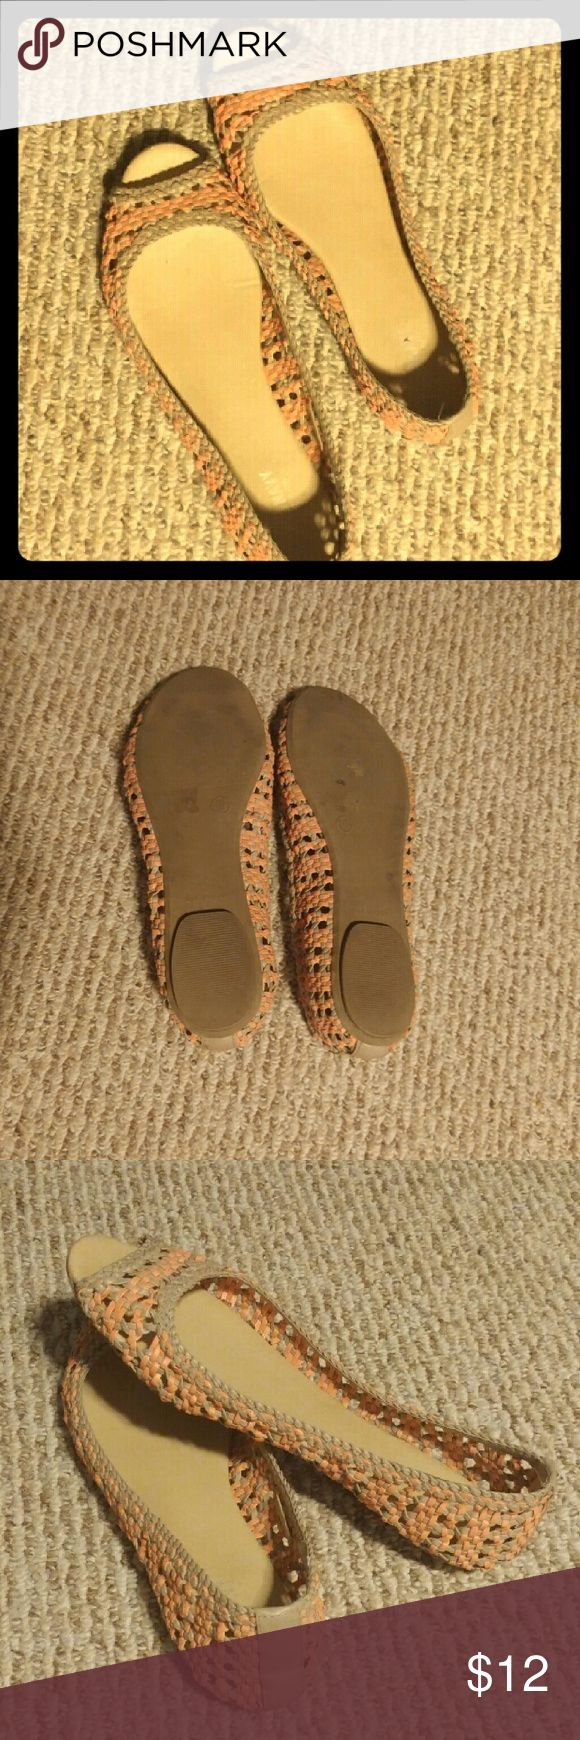 Old Navy Flats Cute light pink and tan Old Navy flats! ~ Only worn a few times, in great condition ~ Size 10 Old Navy Shoes Flats & Loafers